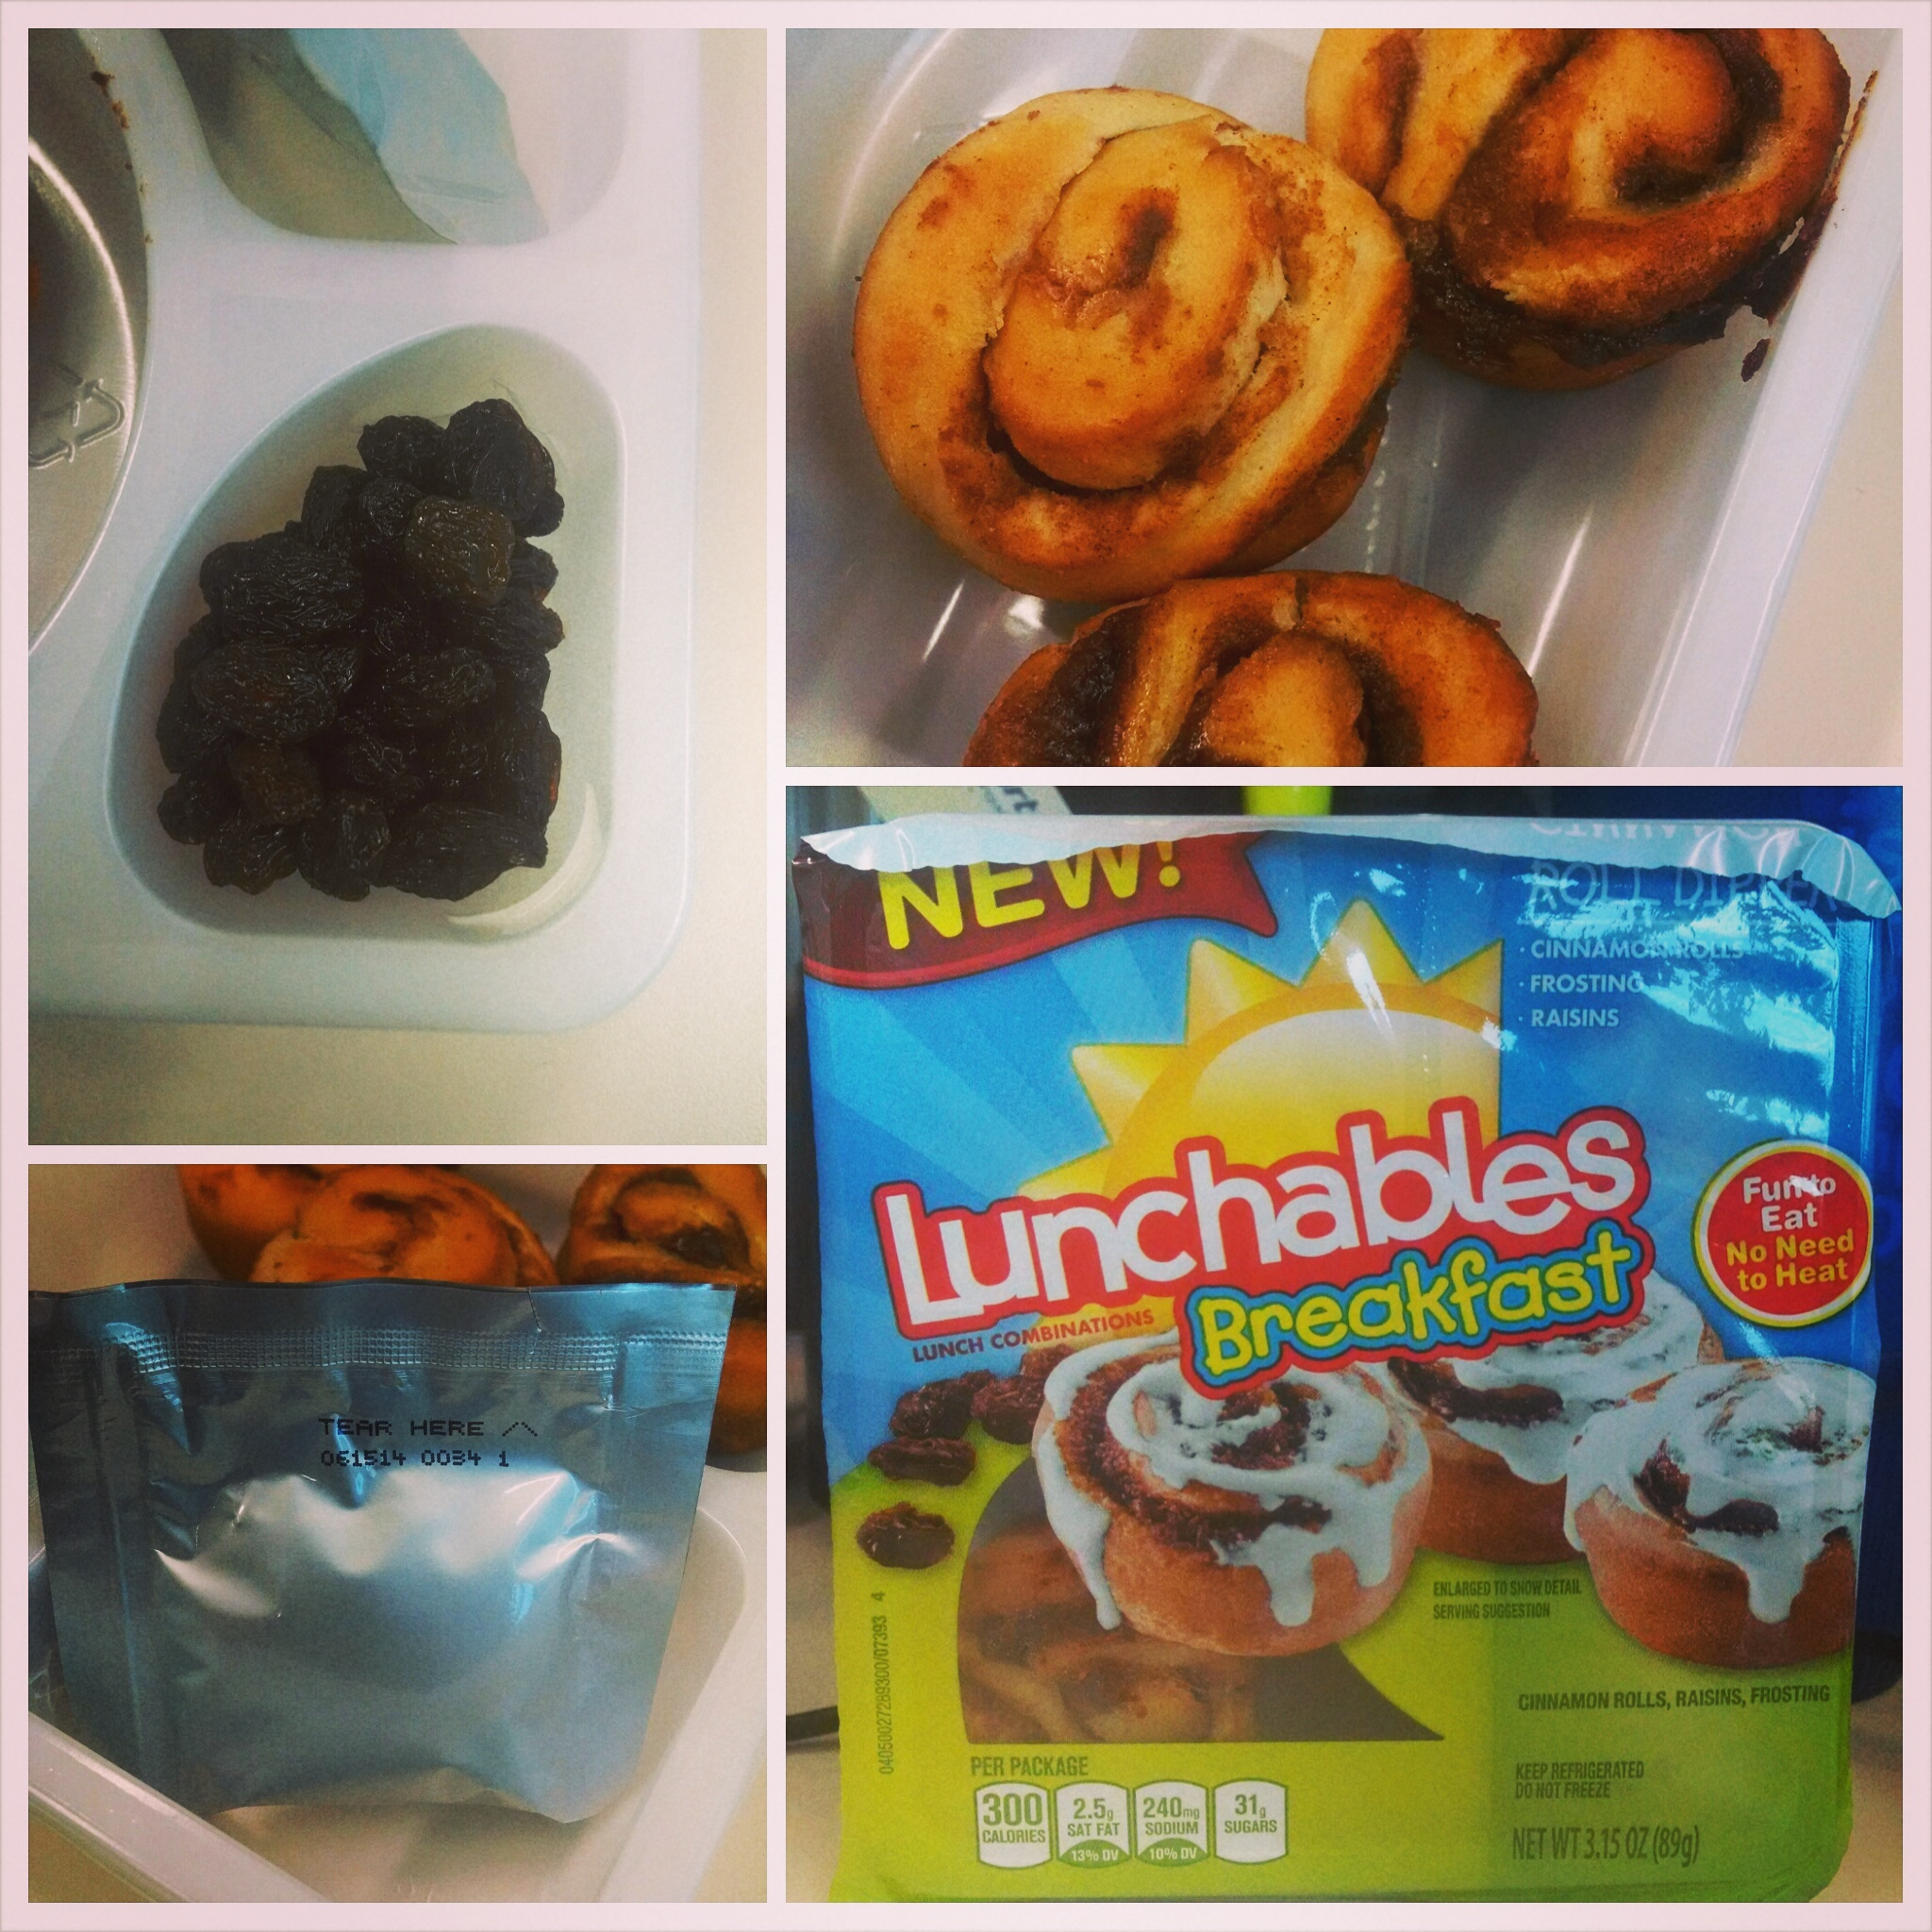 Lunchables Waffles And Pancakes Lunchables Breakfast Pancake